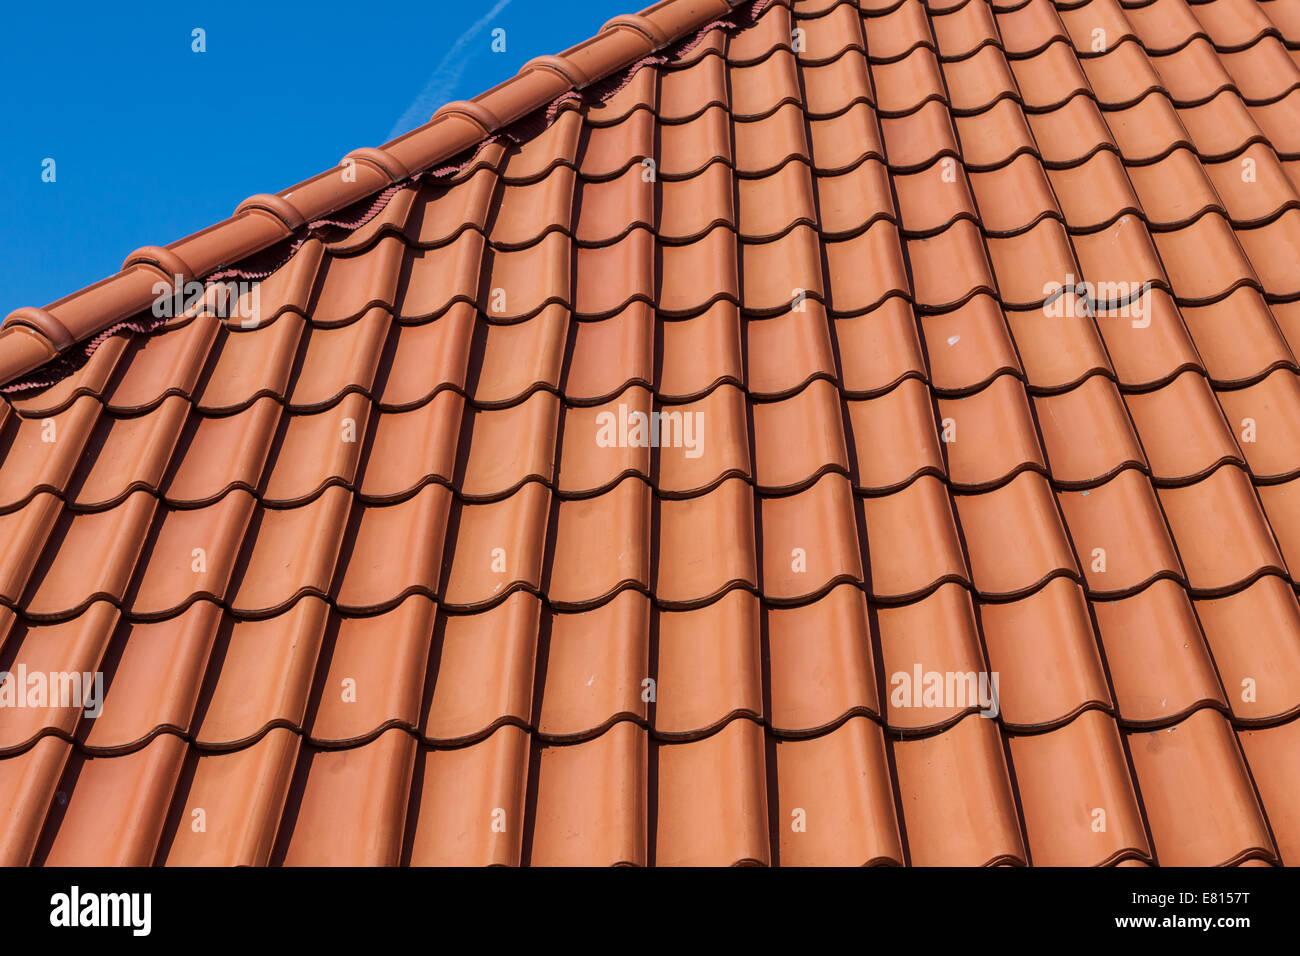 Red Roof Tiles Of A New House On Blue Sky